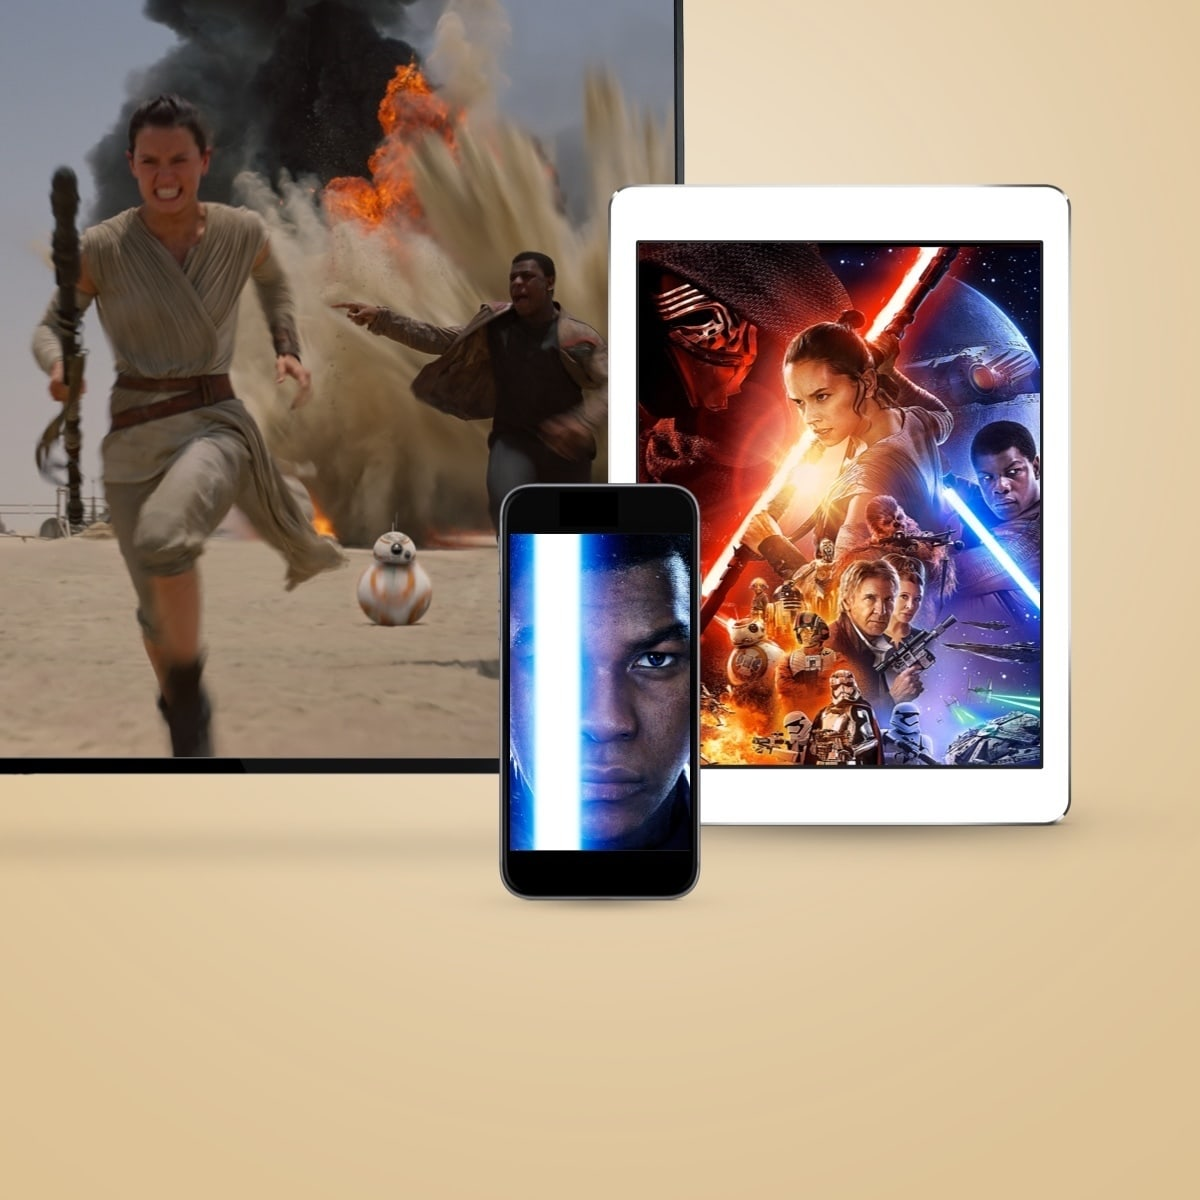 Star Wars: The Force Awakens | Buy the movie today